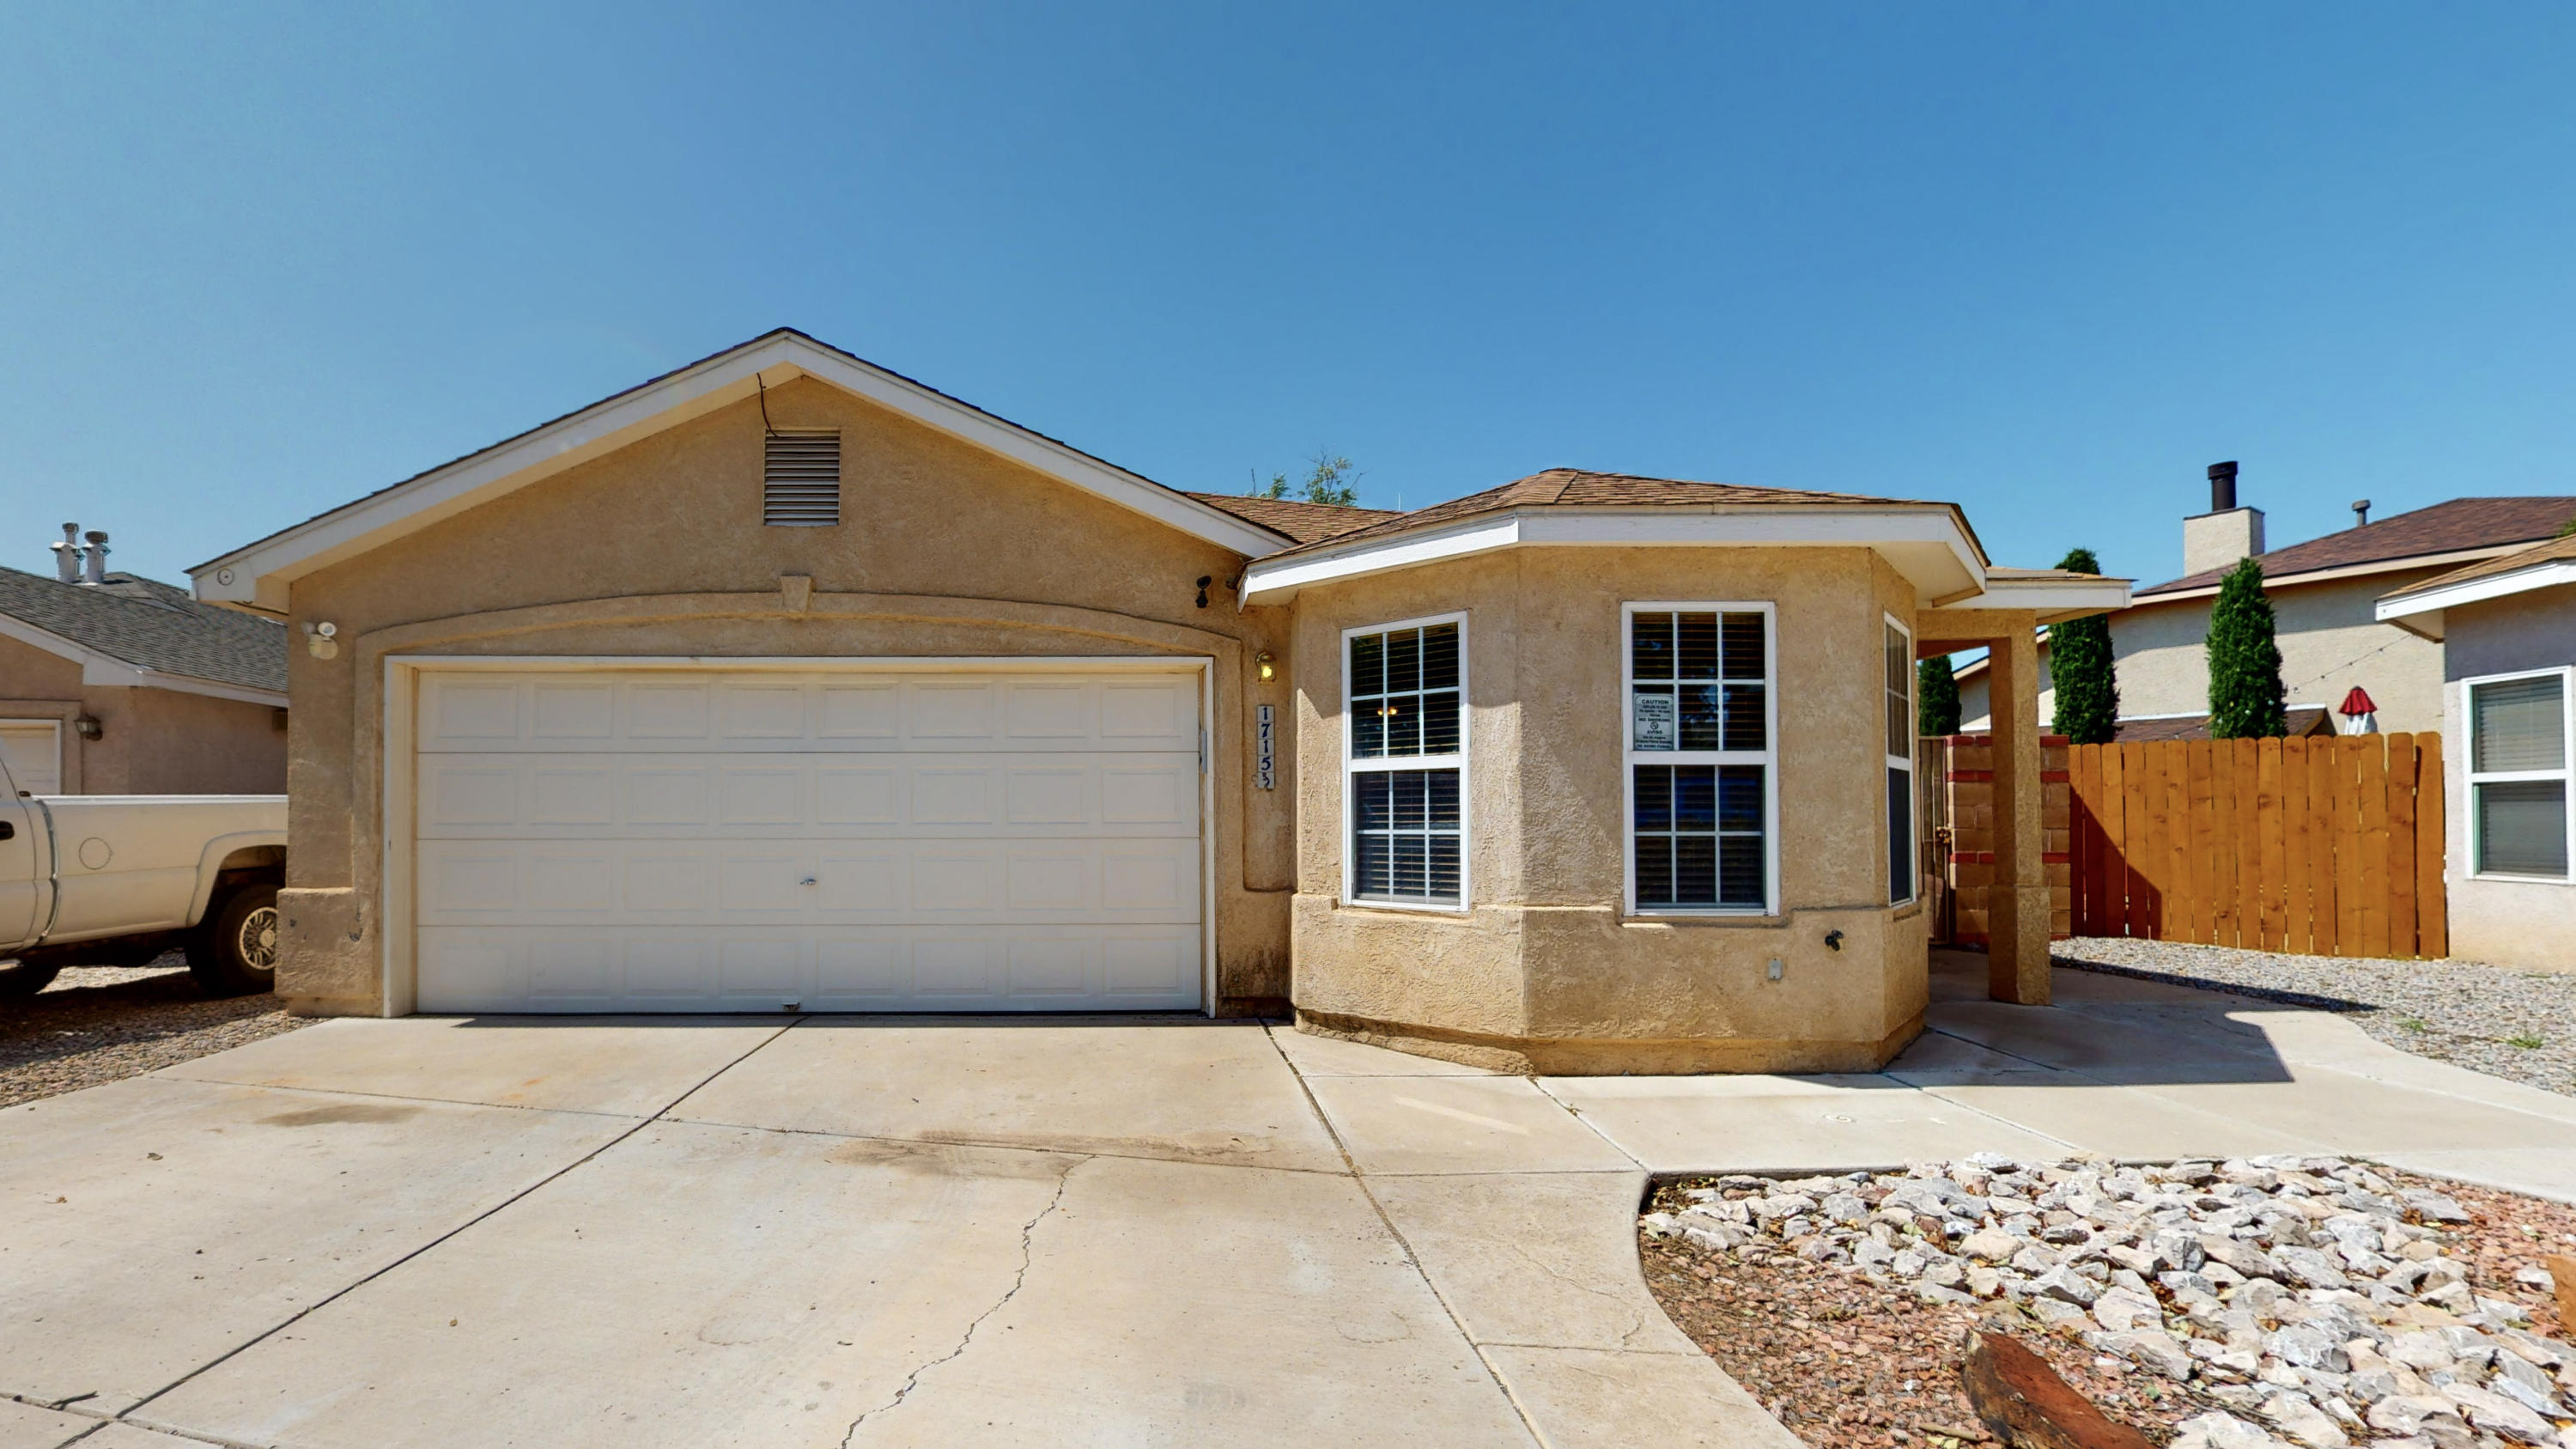 CHECK OUT THE 3D VIRTUAL TOUR. PERFECT FOR A BEGINNING AND READY TO MOVE IN!!! Centrally located! Close to shopping areas, schools and easy access to freeways! Property features, Voulted ceilings, REFRIGERATED AIR, SS Appliances,  a wood burning fireplace w/ log lighter for those winter cold days!  Private yard w/water feature,  heated sunroom for entertainment and wonderful retreat for privacy. This is a must see house! Do not miss it!!